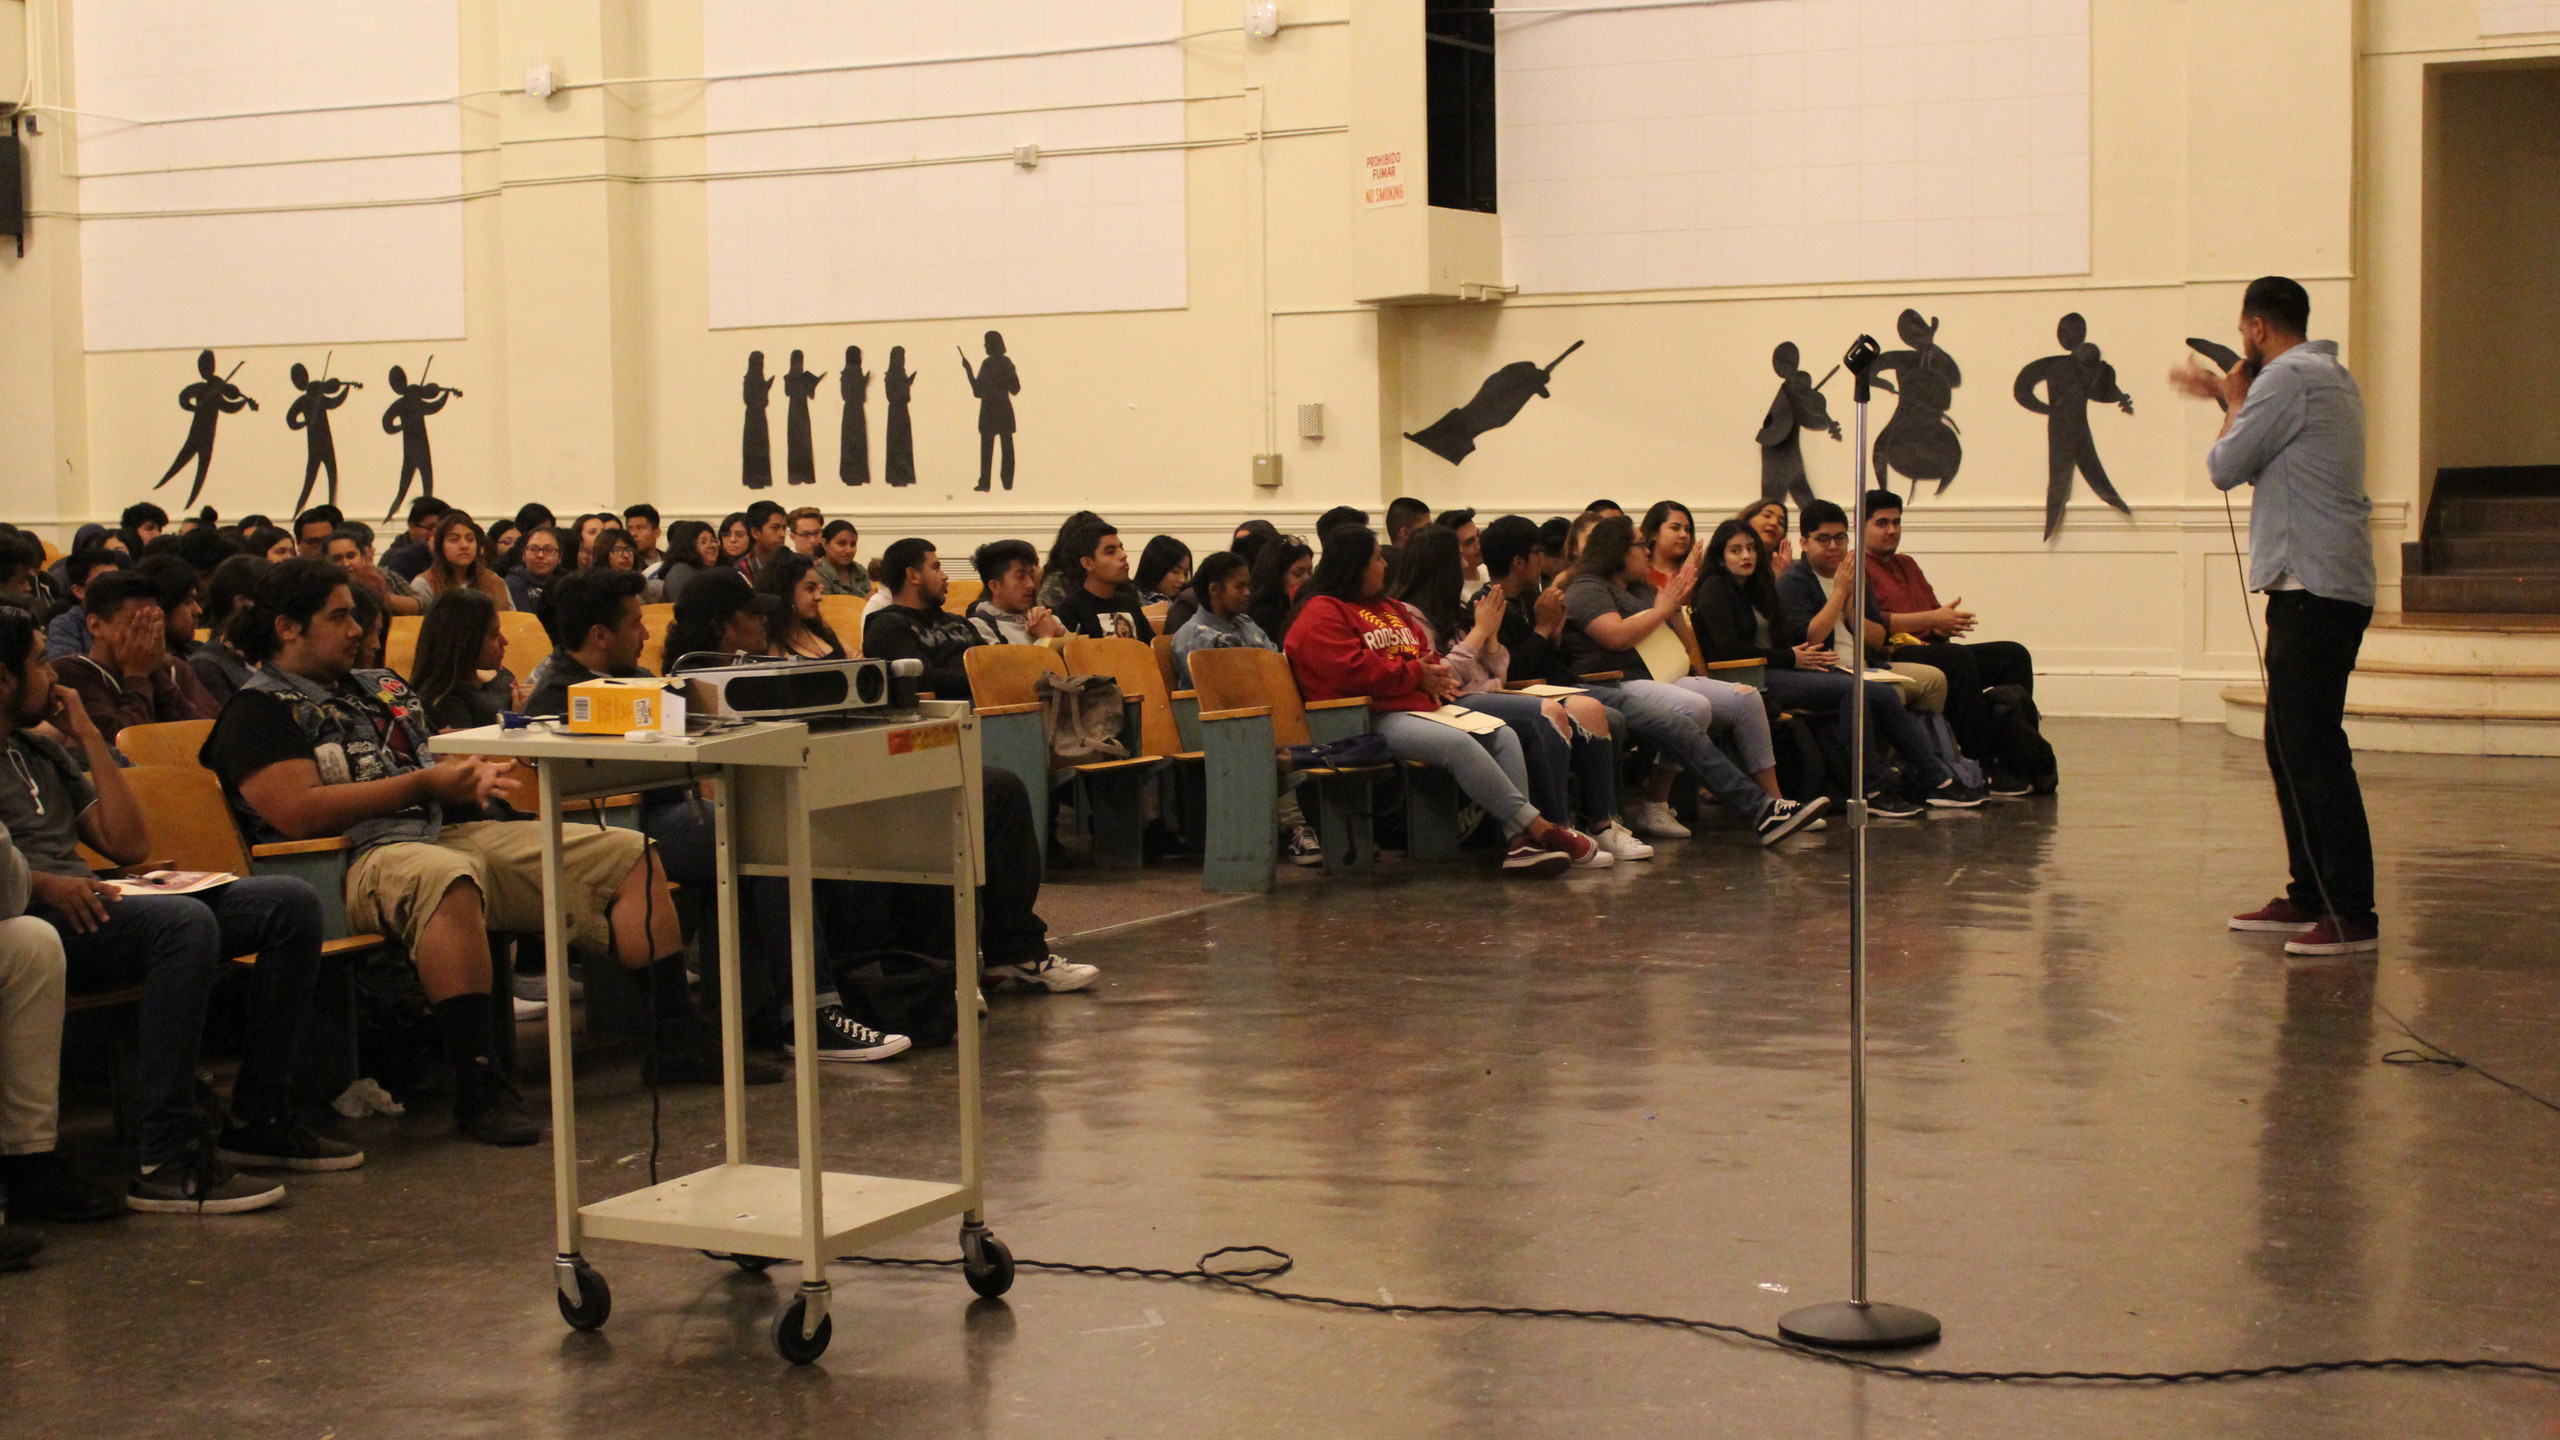 College and career coordinator, Alejandro, giving welcoming remarks.